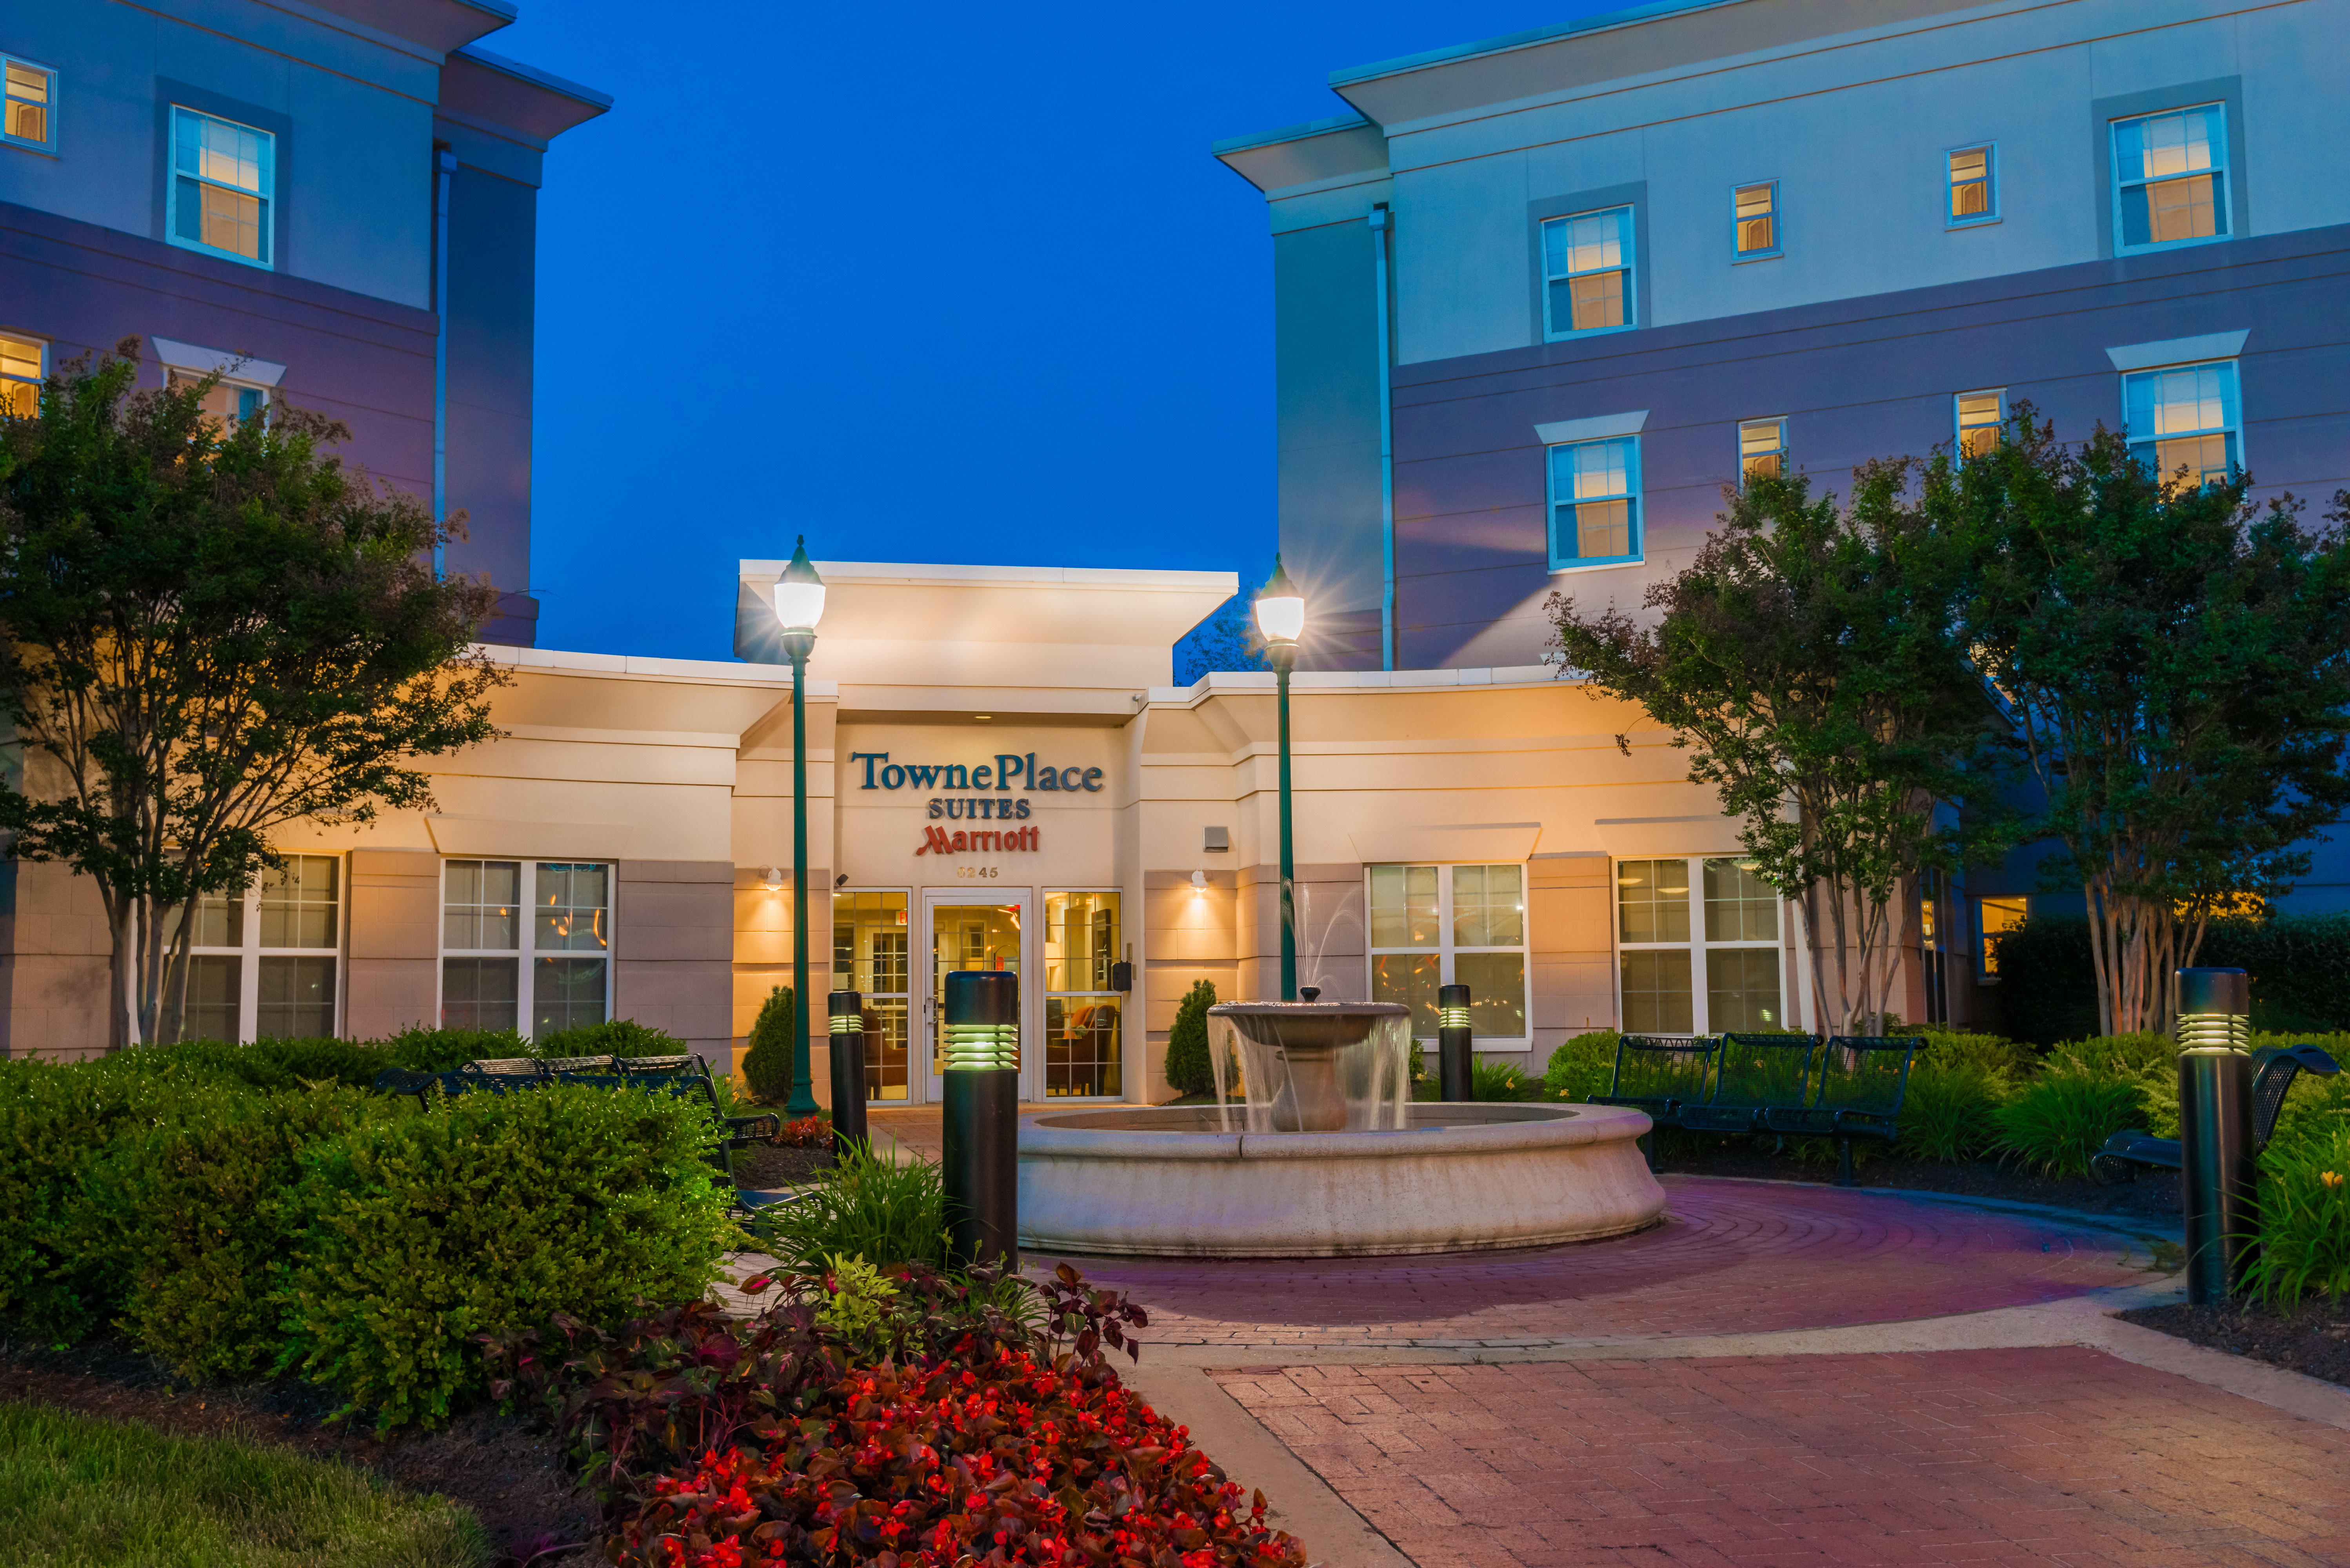 TownePlace Suites by Marriott Springfield image 16